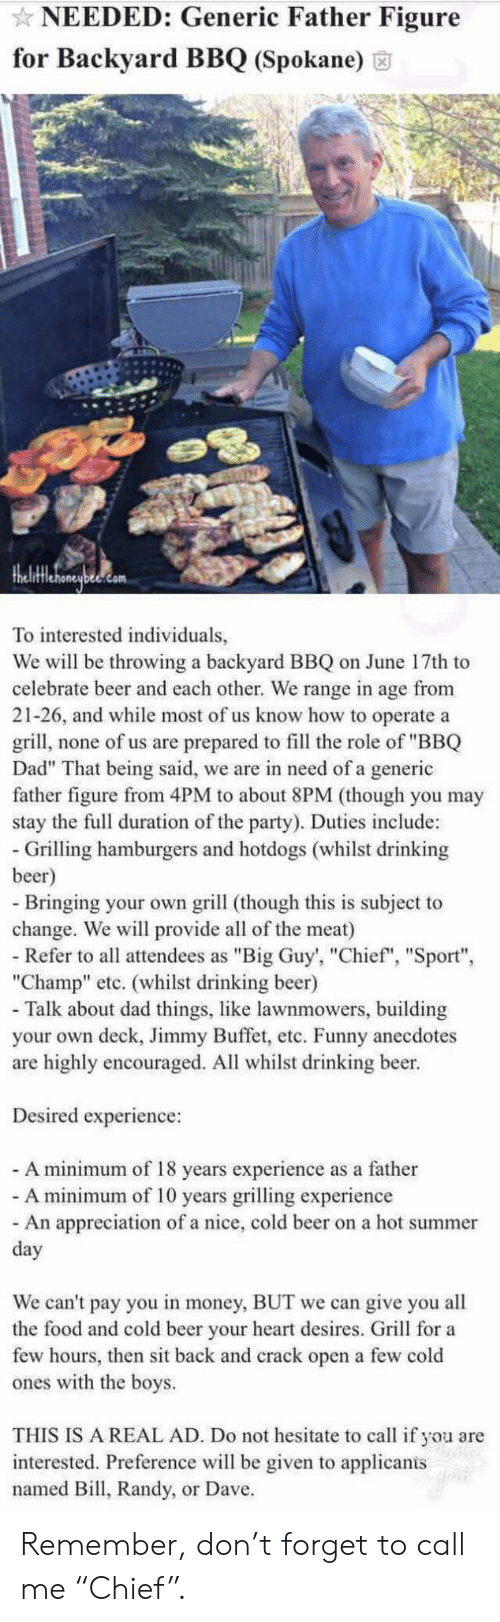 "whilst: NEEDED: Generic Father Figure  for Backyard BBQ (Spokane)  To interested individuals,  We will be throwing a backyard BBQ on June 17th to  celebrate beer and each other. We range in age from  21-26, and while most of us know how to operate a  grill, none of us are prepared to fill the role of ""BBQ  Dad"" That being said, we are in need of a generic  father figure from 4PM to about 8PM (though you may  stay the full duration of the party). Duties include:  - Grilling hamburgers and hotdogs (whilst drinking  beer)  - Bringing your own grill (though this is subject to  change. We will provide all of the meat)  - Refer to all attendees as ""Big Guy', ""Chief"", ""Sport""  ""Champ"" etc. (whilst drinking beer)  - Talk about dad things, like lawnmowers, building  your own deck, Jimmy Buffet, etc. Funny anecdotes  are highly encouraged. All whilst drinking beer.  Desired experience:  - A minimum of 18 years experience as a father  - A minimum of 10 years grilling experience  - An appreciation of a nice, cold beer on a hot summer  day  We can't pay you in money, BUT we can give you all  the food and cold beer your heart desires. Grill for a  few hours, then sit back and crack open a few cold  ones with the boys.  THIS IS A REAL AD. Do not hesitate to call if you are  interested. Preference will be given to applicanis  named Bill, Randy, or Dave. Remember, don't forget to call me ""Chief""."